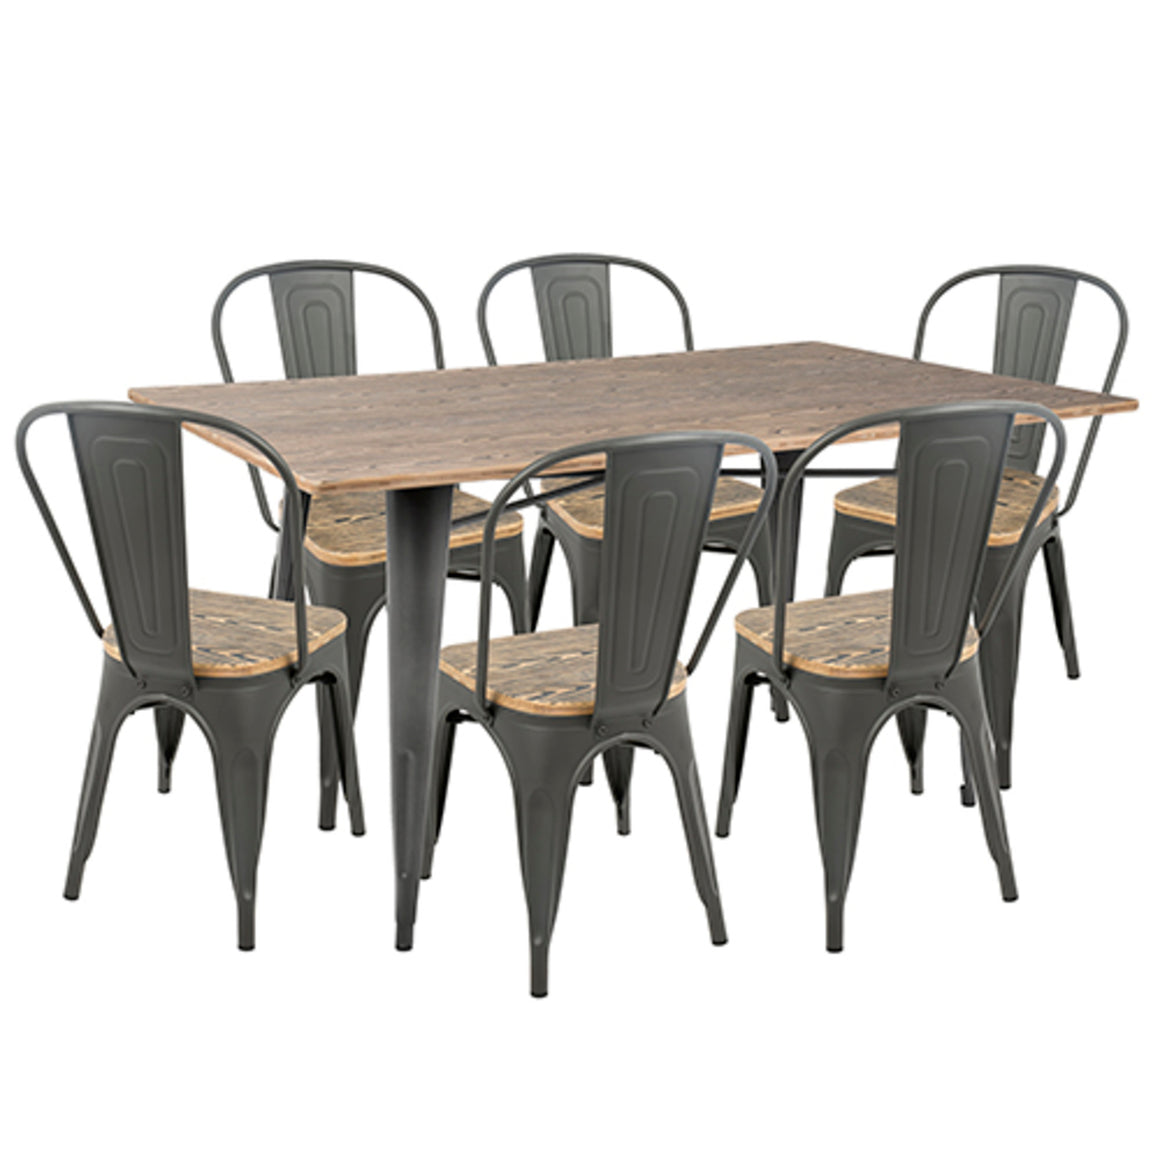 Oregon 7-Piece Industrial-Farmhouse Dining Set in Grey and Brown by LumiSource